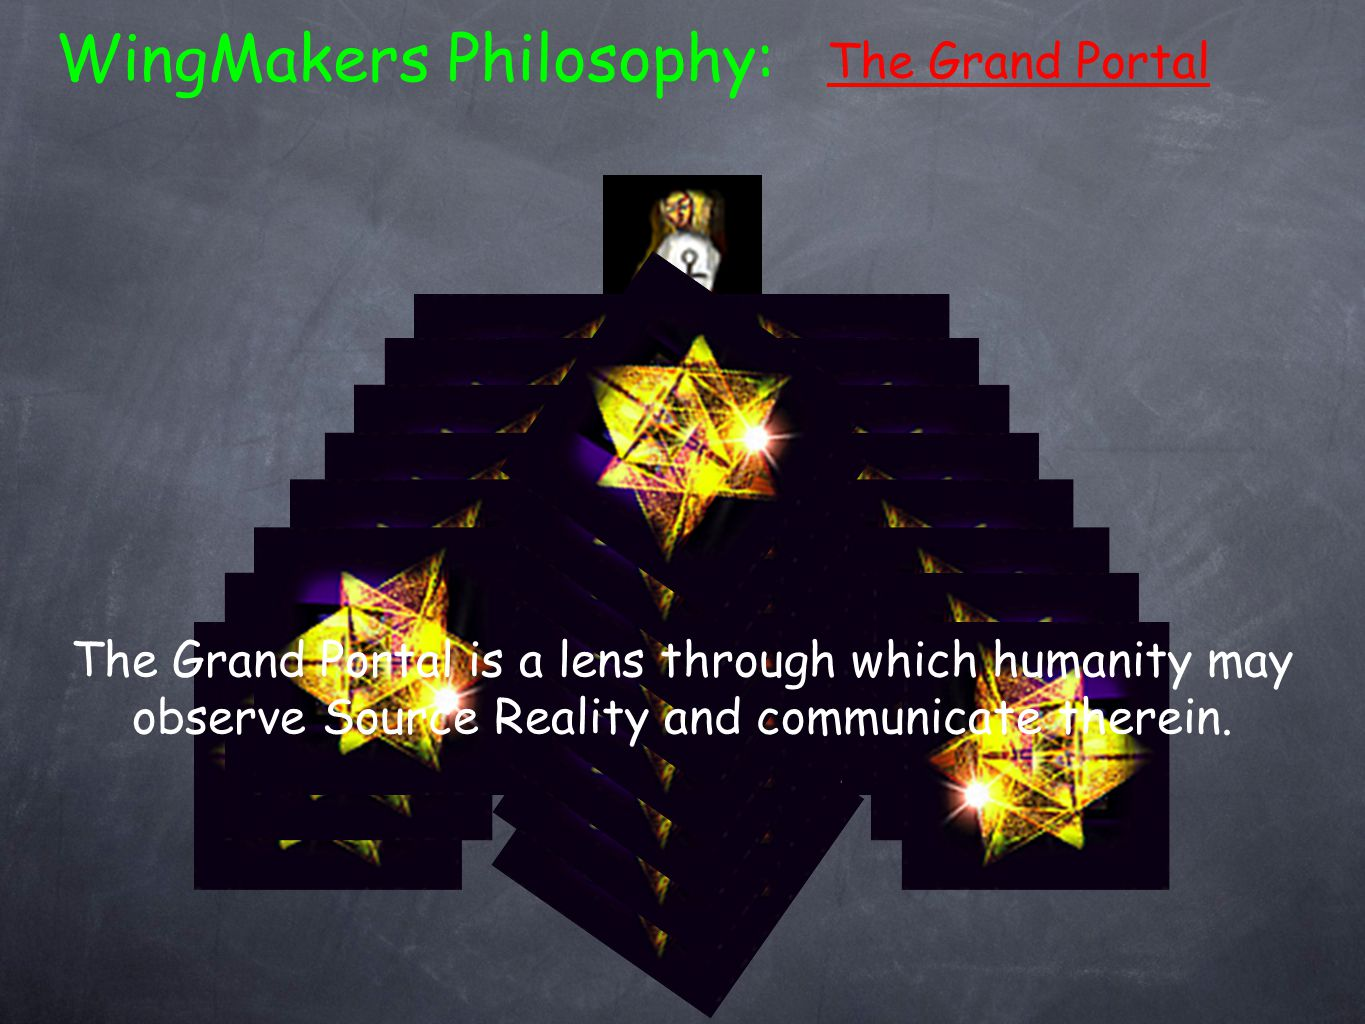 The Grand Portal WingMakers Philosophy: The Grand Portal is a lens through which humanity may observe Source Reality and communicate therein.